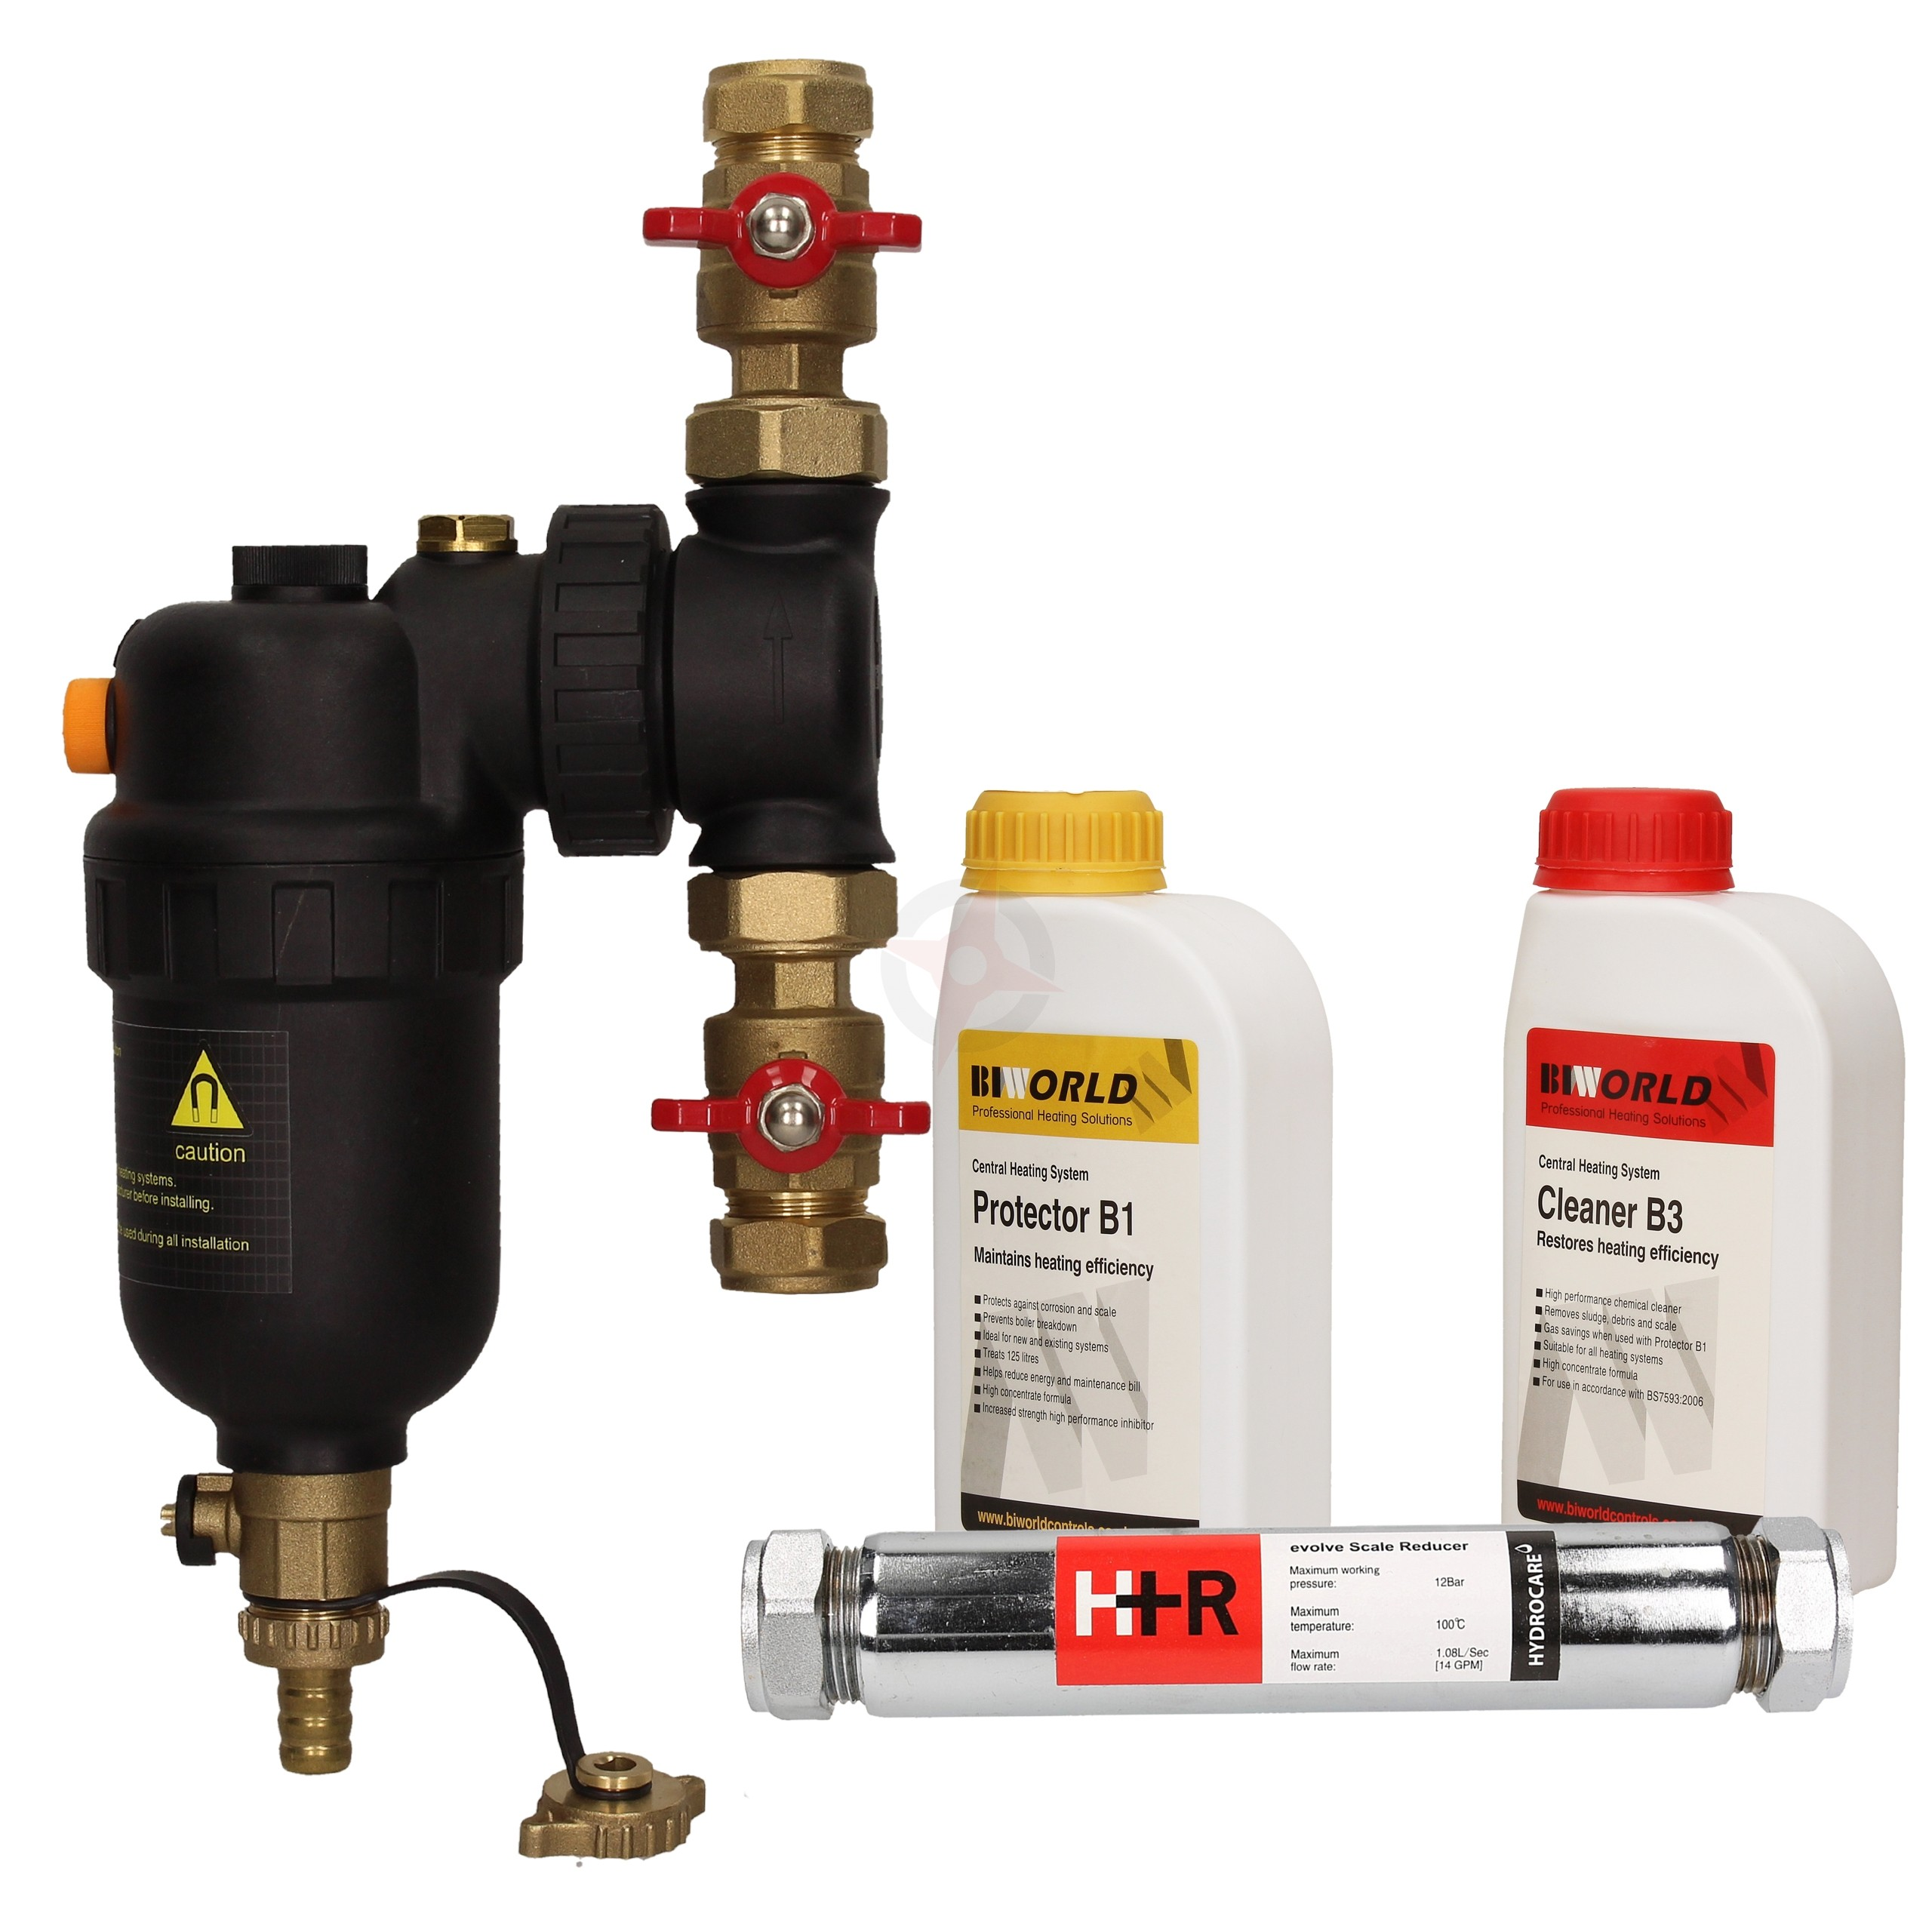 Boiler Protection Pack (BIW 2)